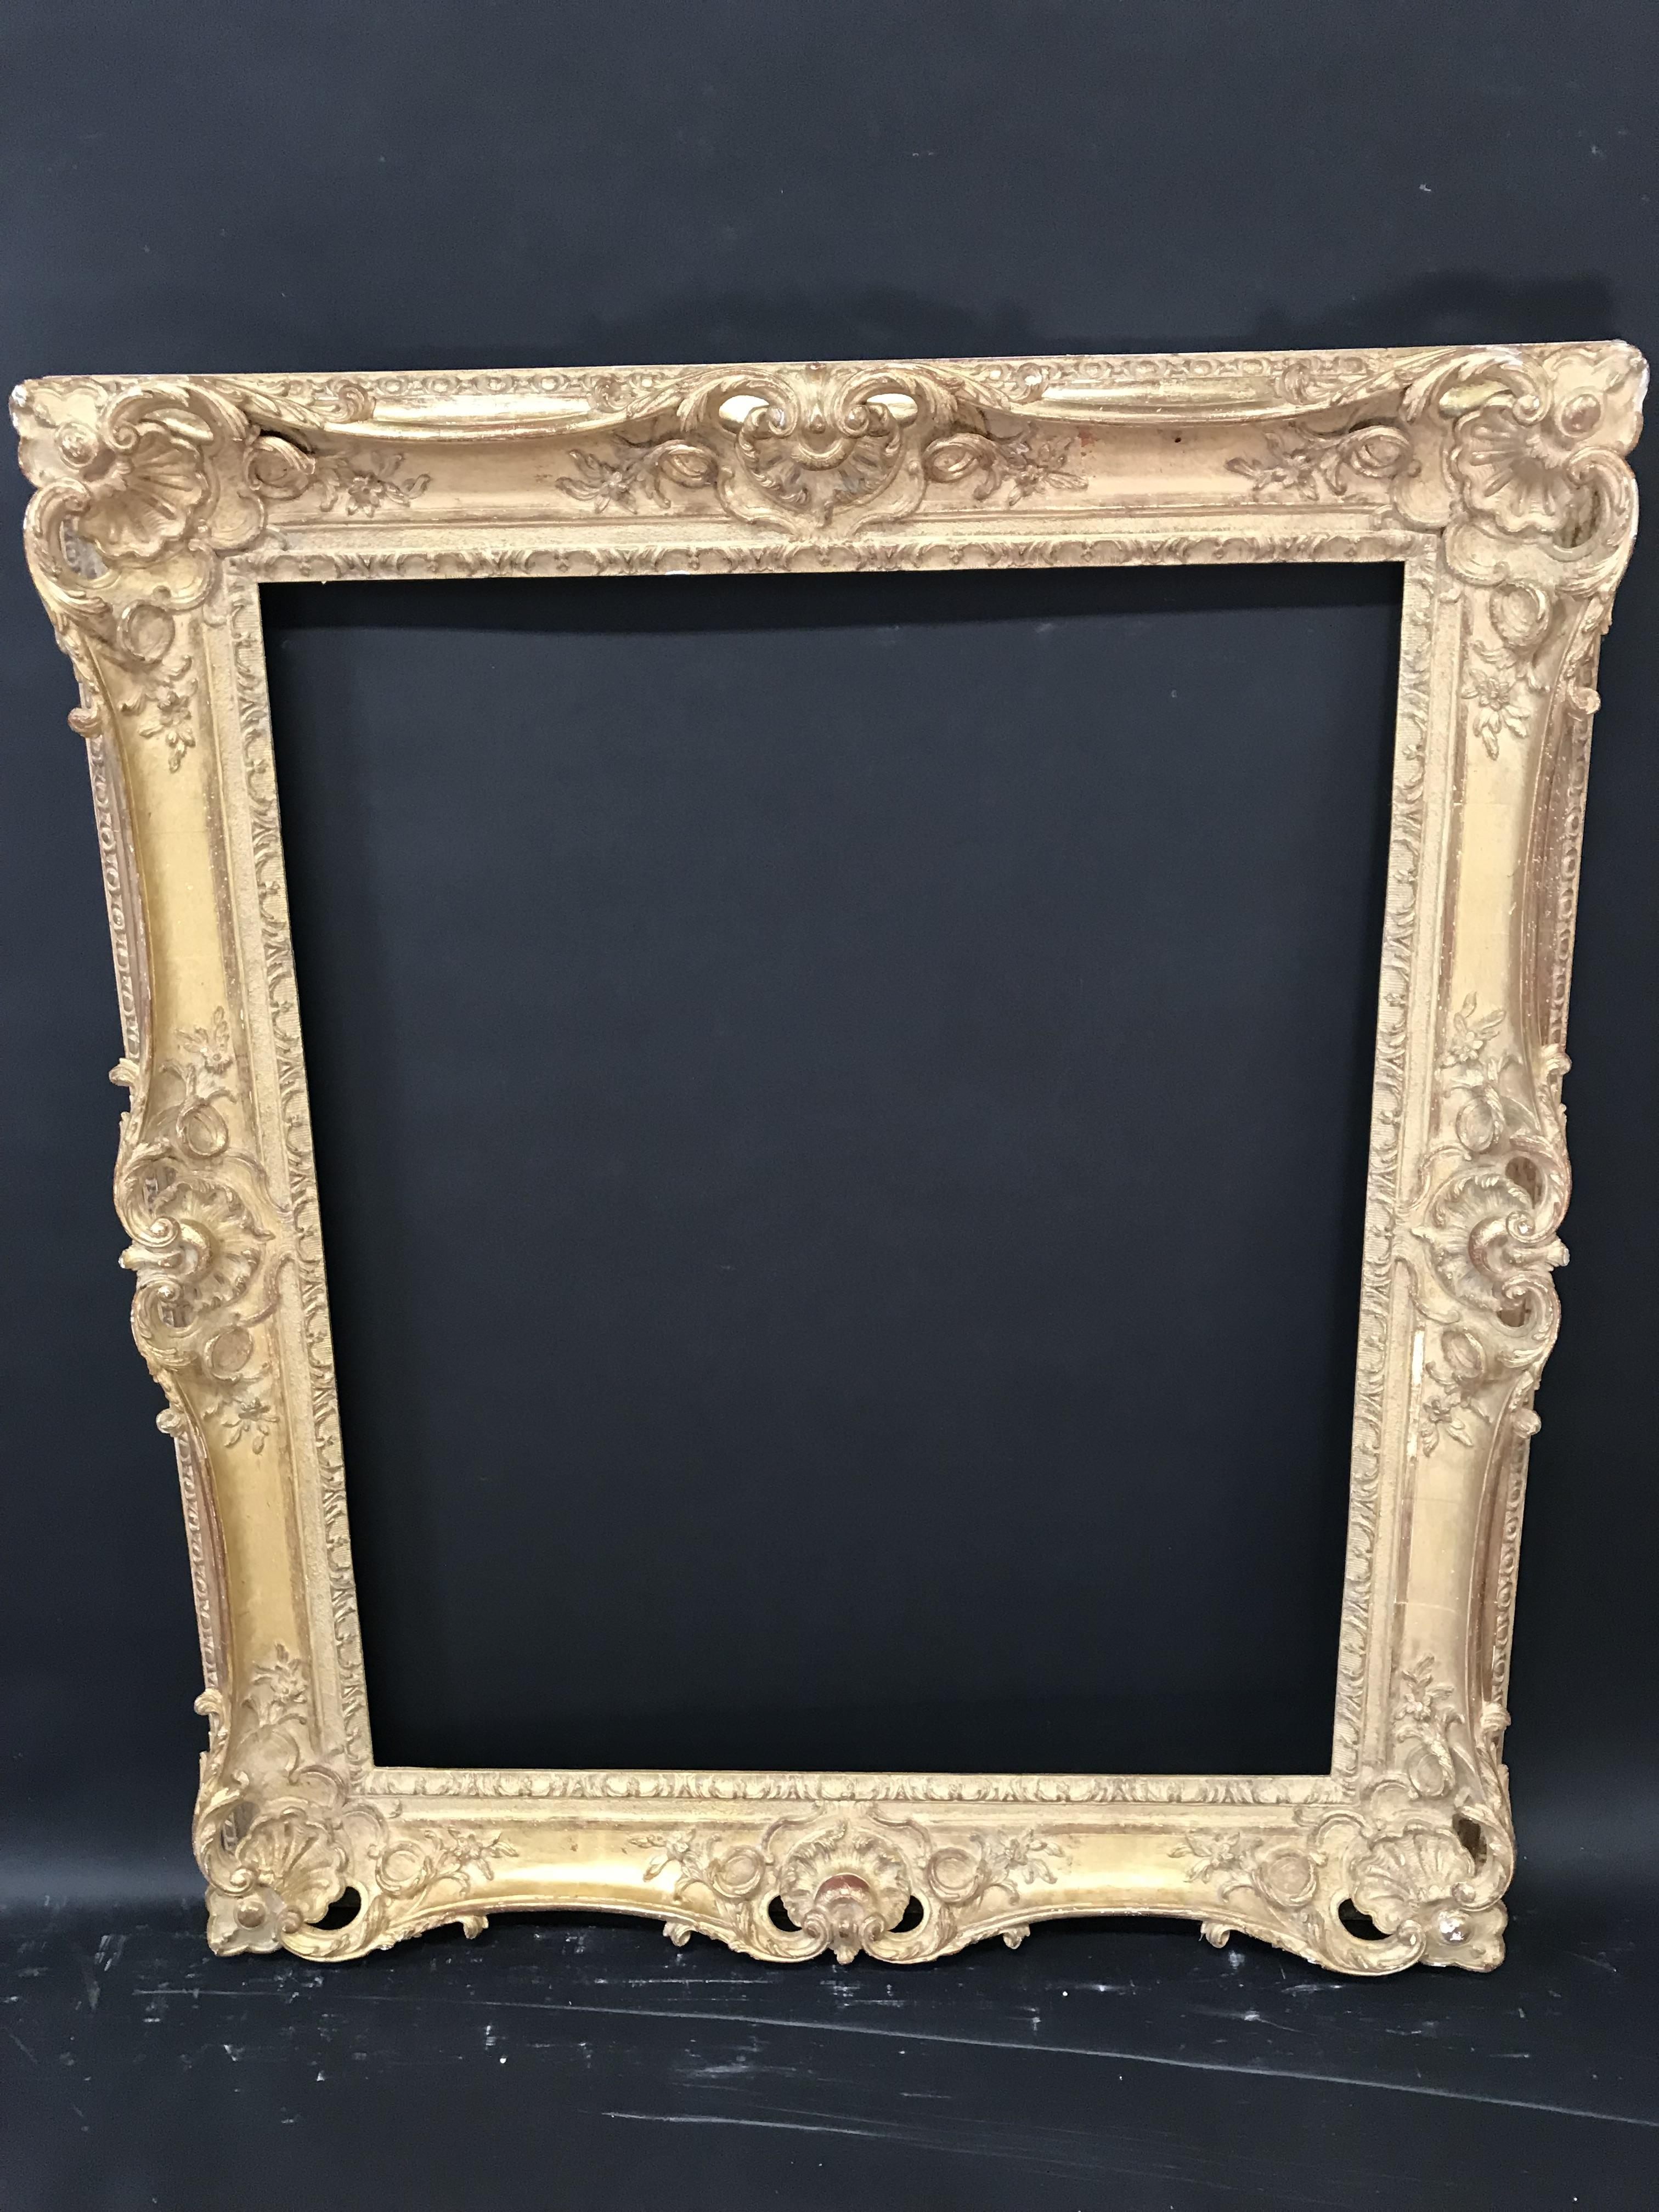 Lot 42 - 19th Century English School. A French Style Gilt Composition Frame, with Swept and Pierced Centres